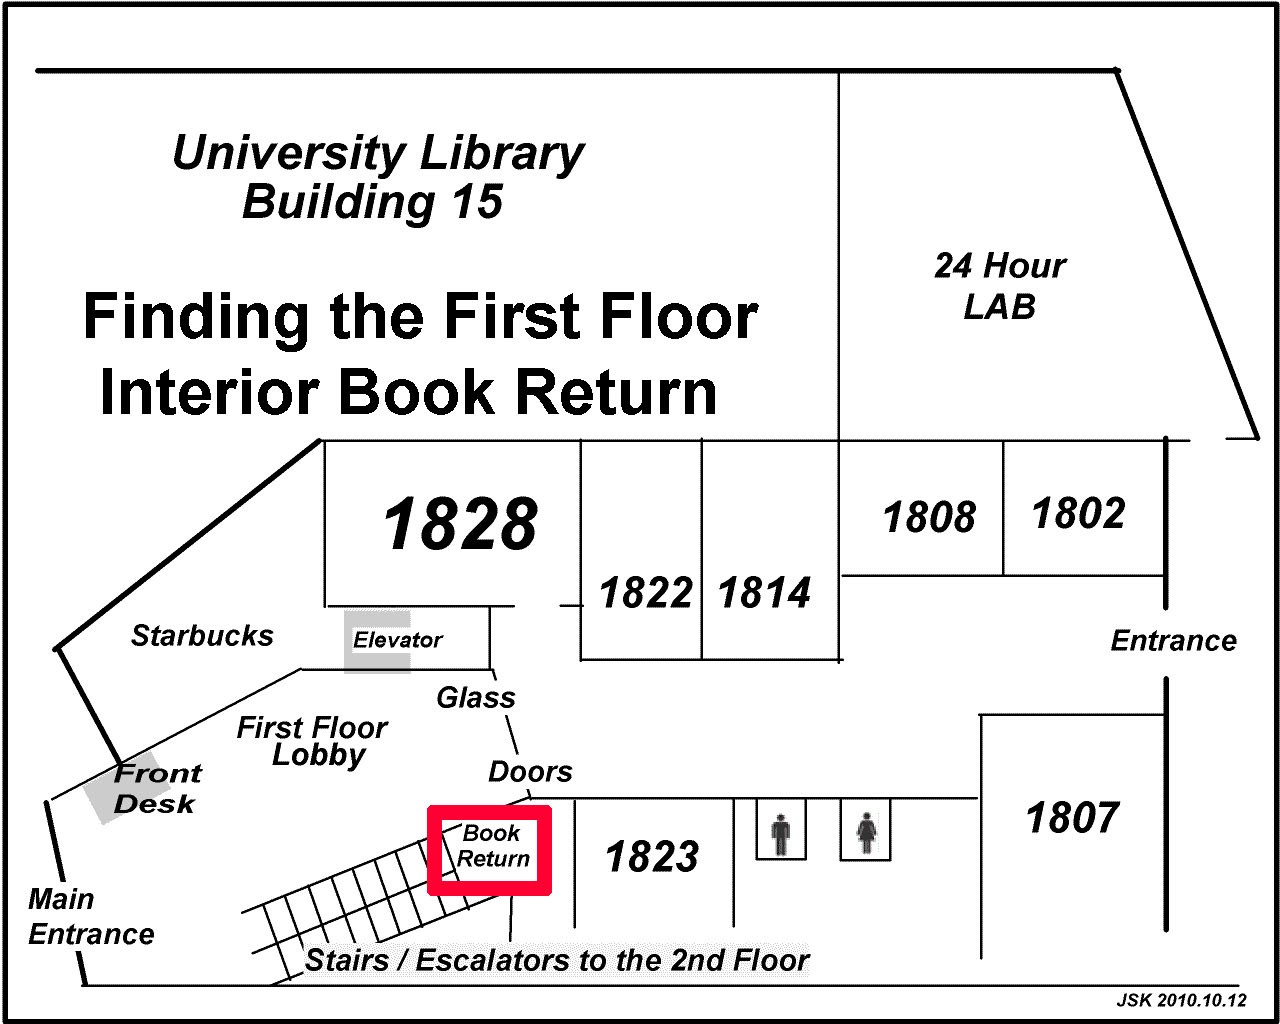 Map showing the location of the first floor interior book return